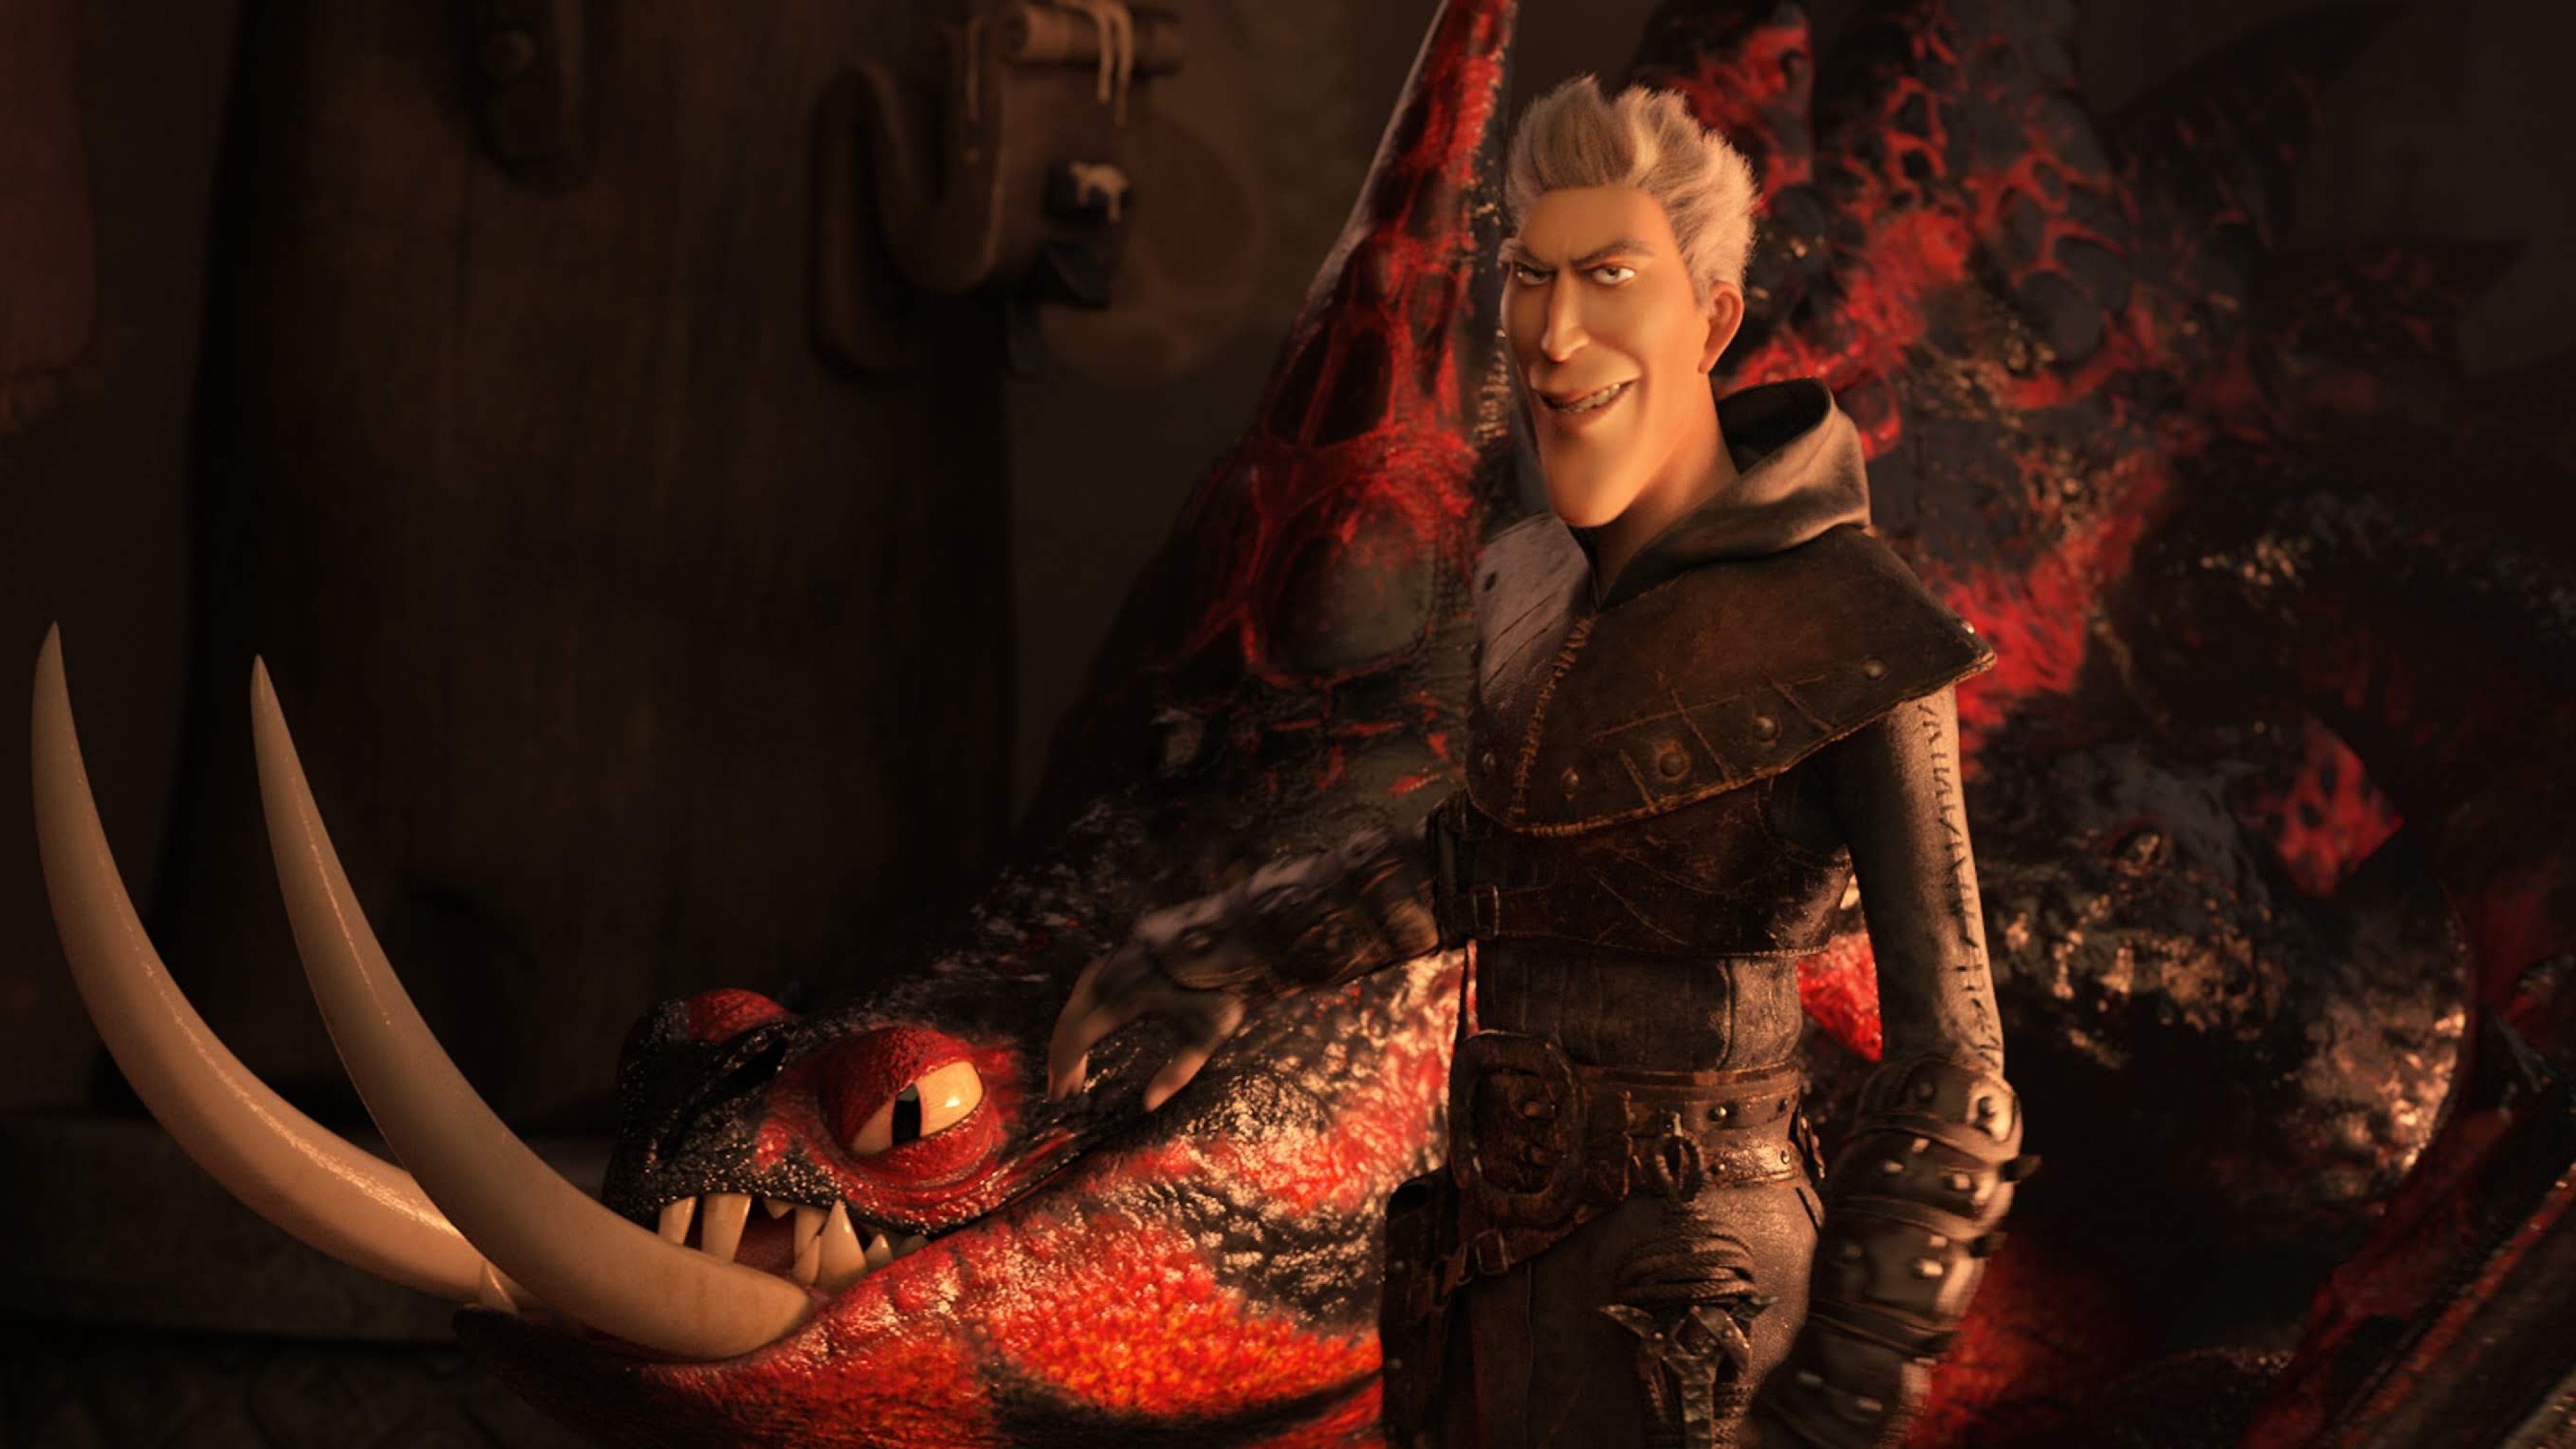 Wallpaper How To Train Your Dragon The Hidden World 4k Movies 20229